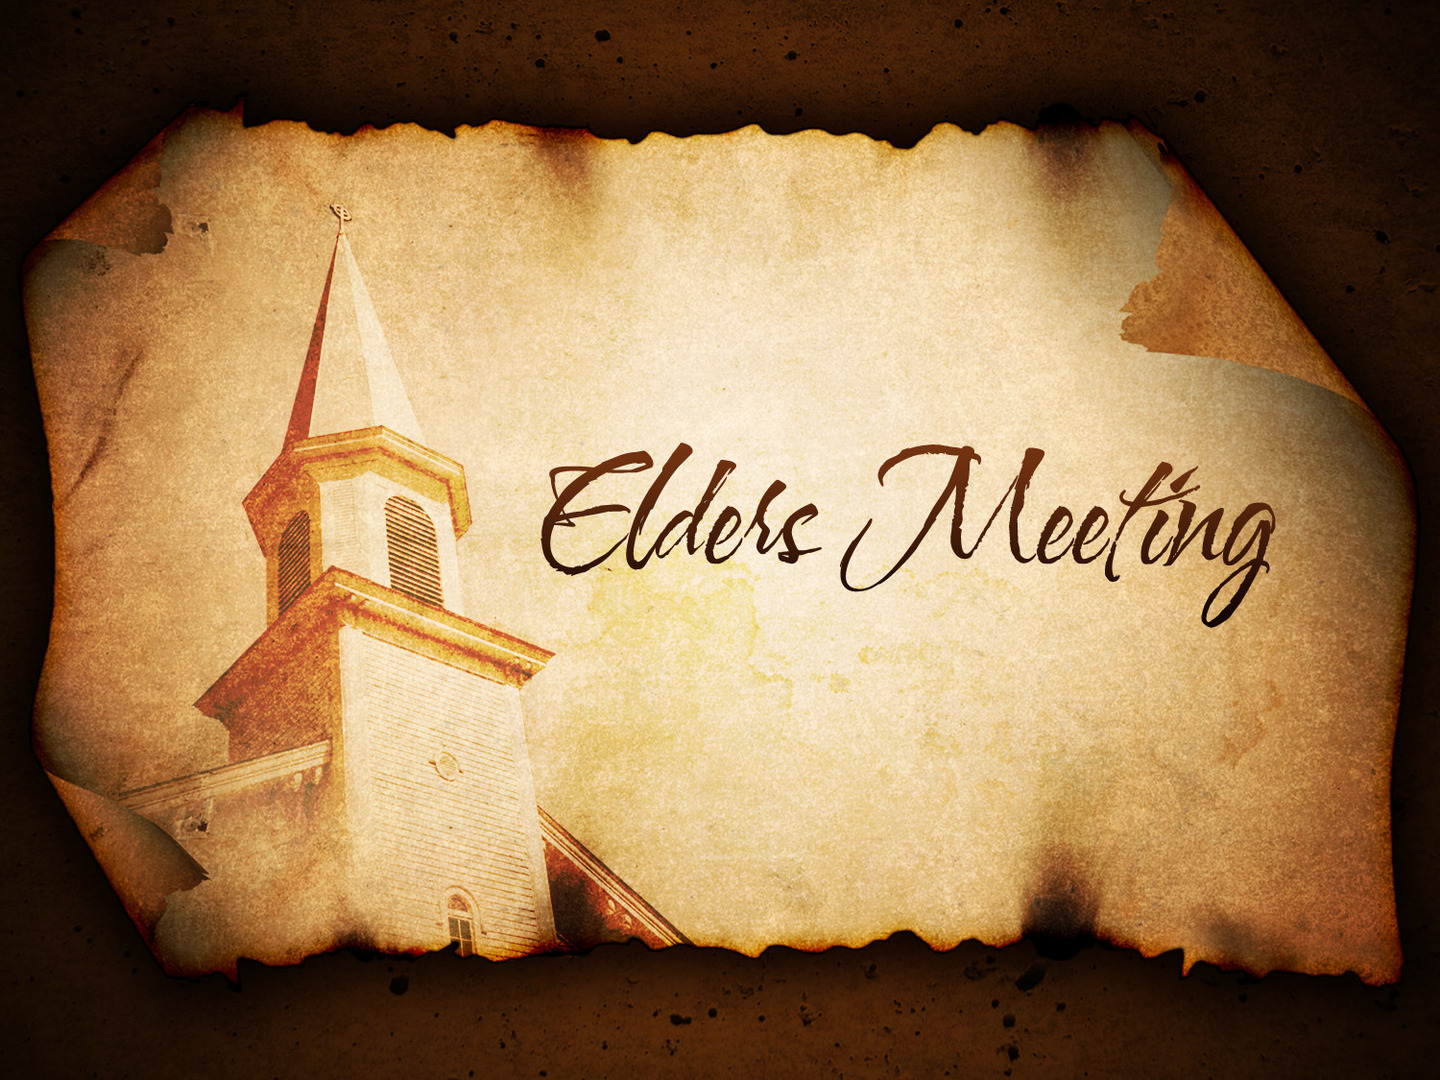 elders_meeting-title-2-still-4x3 image